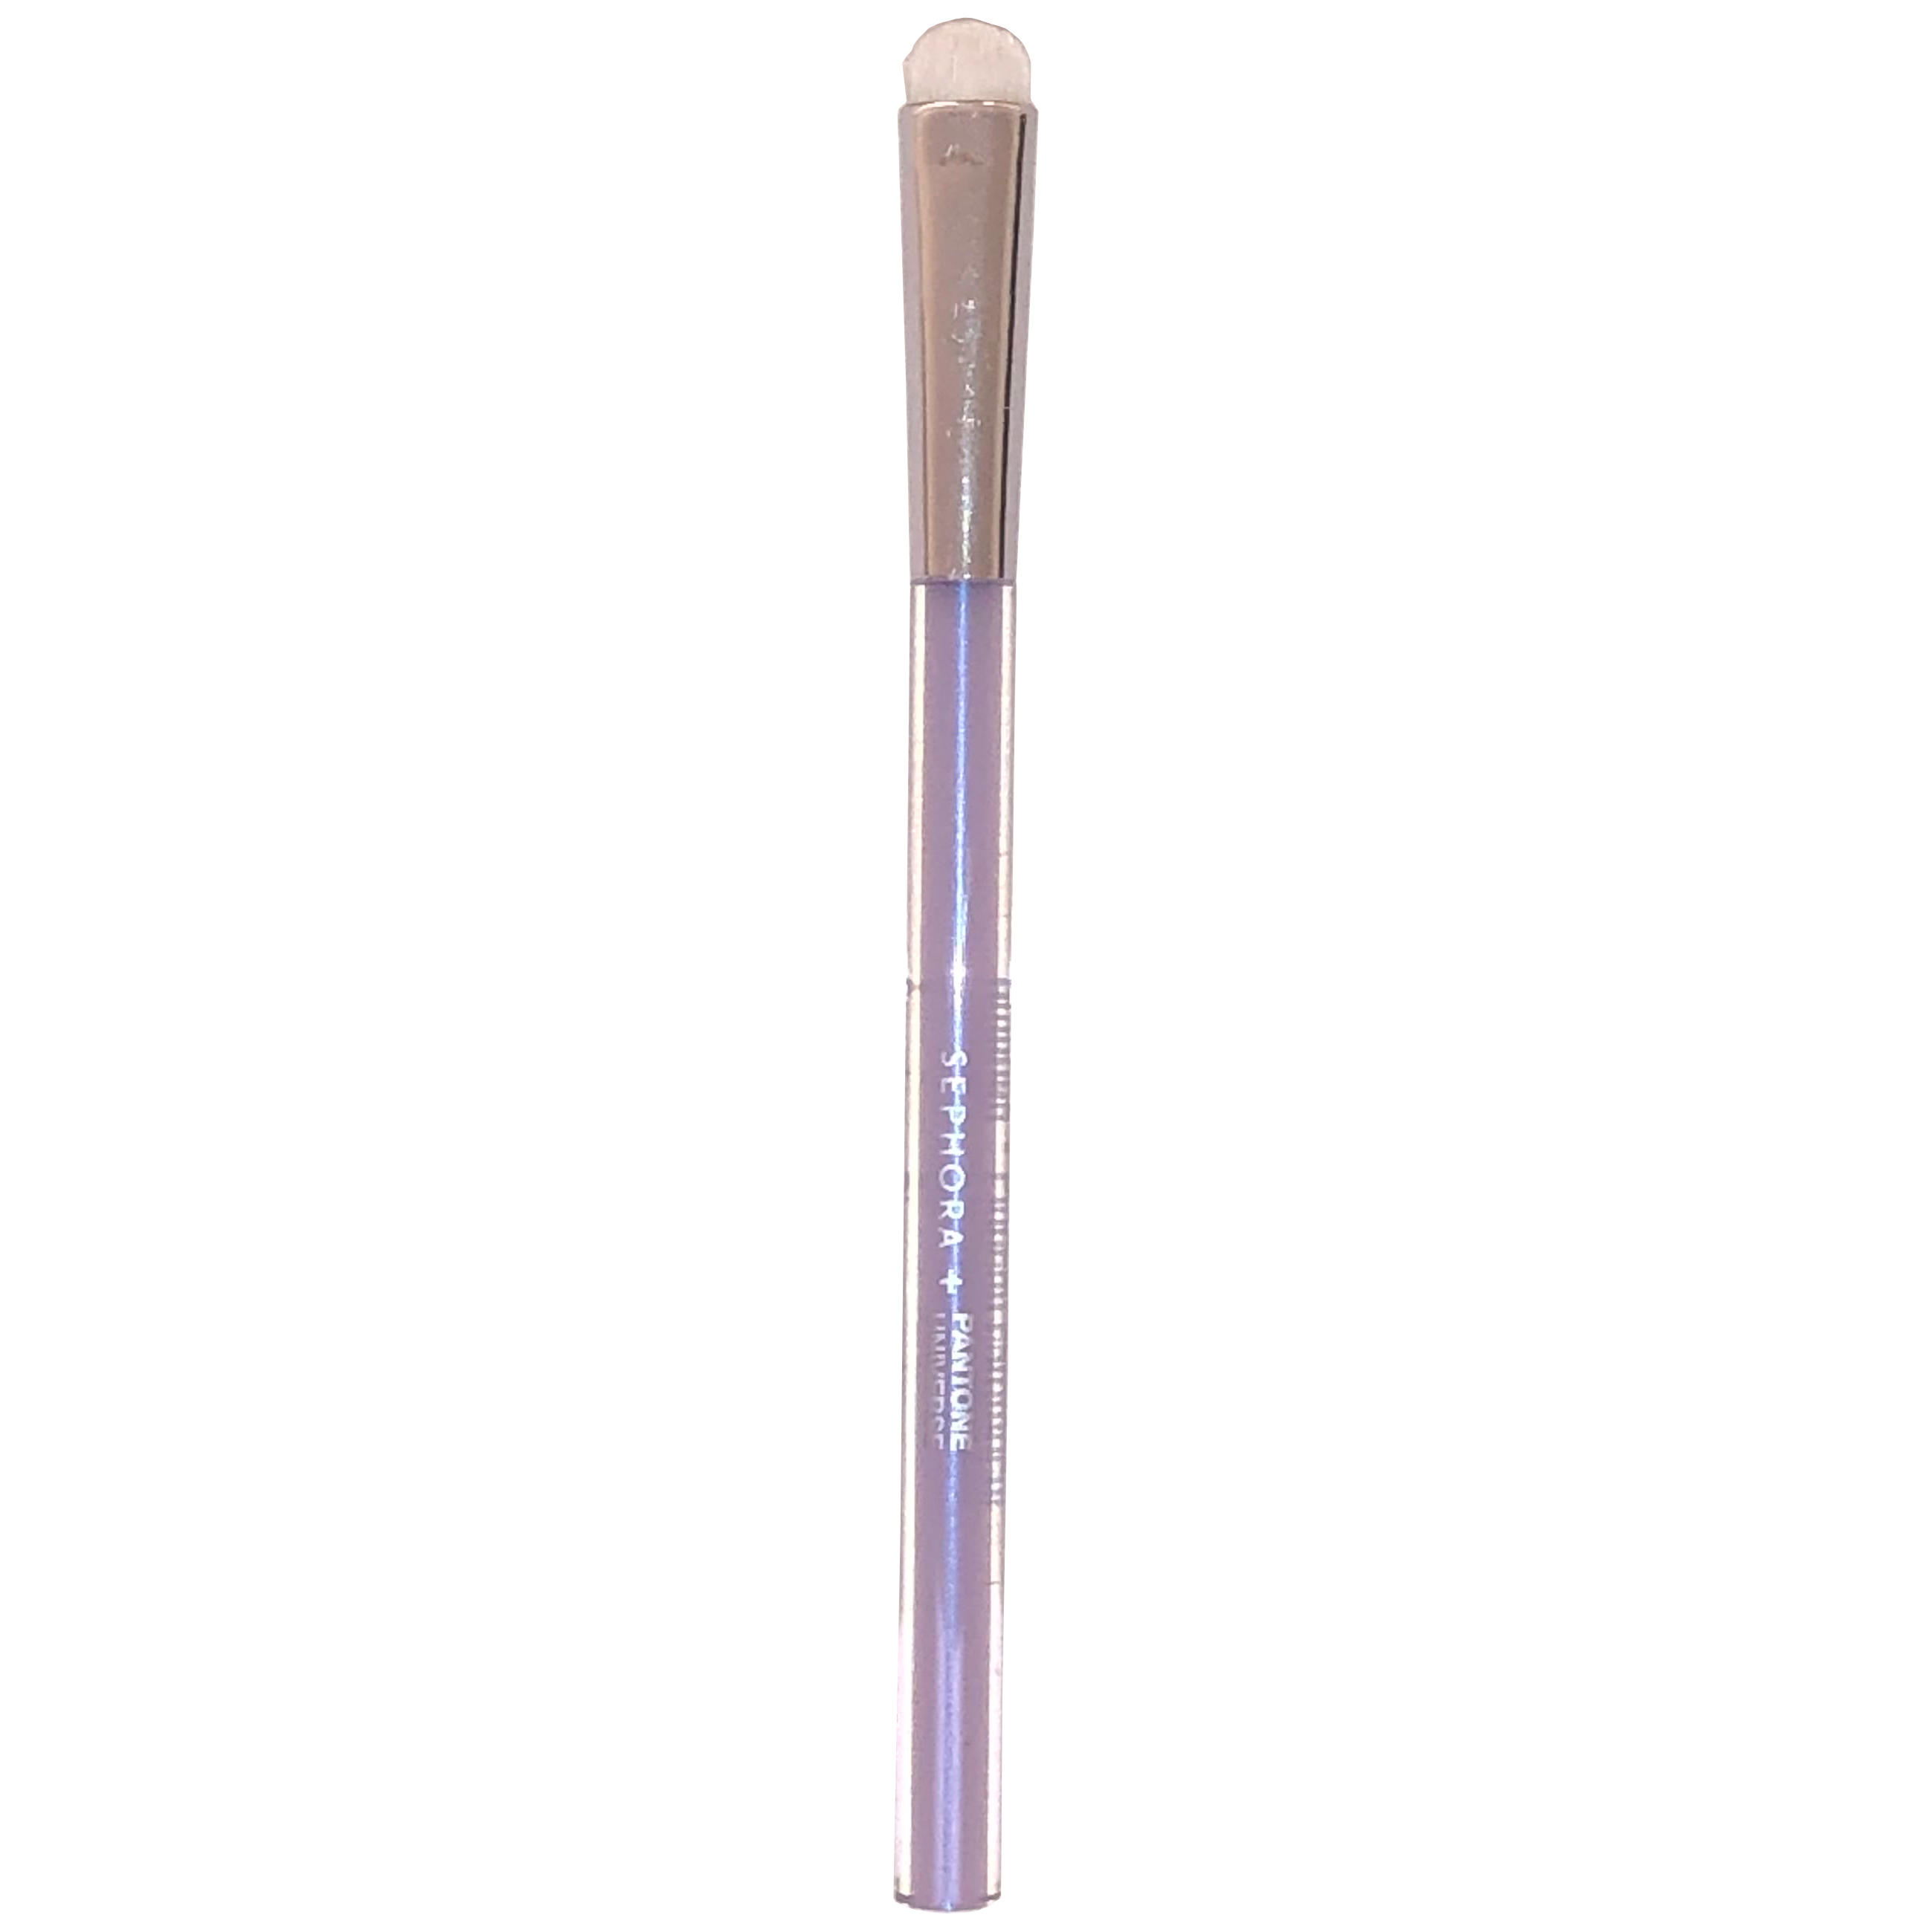 Sephora Dense Short Bristle Shader Eye Brush Holo